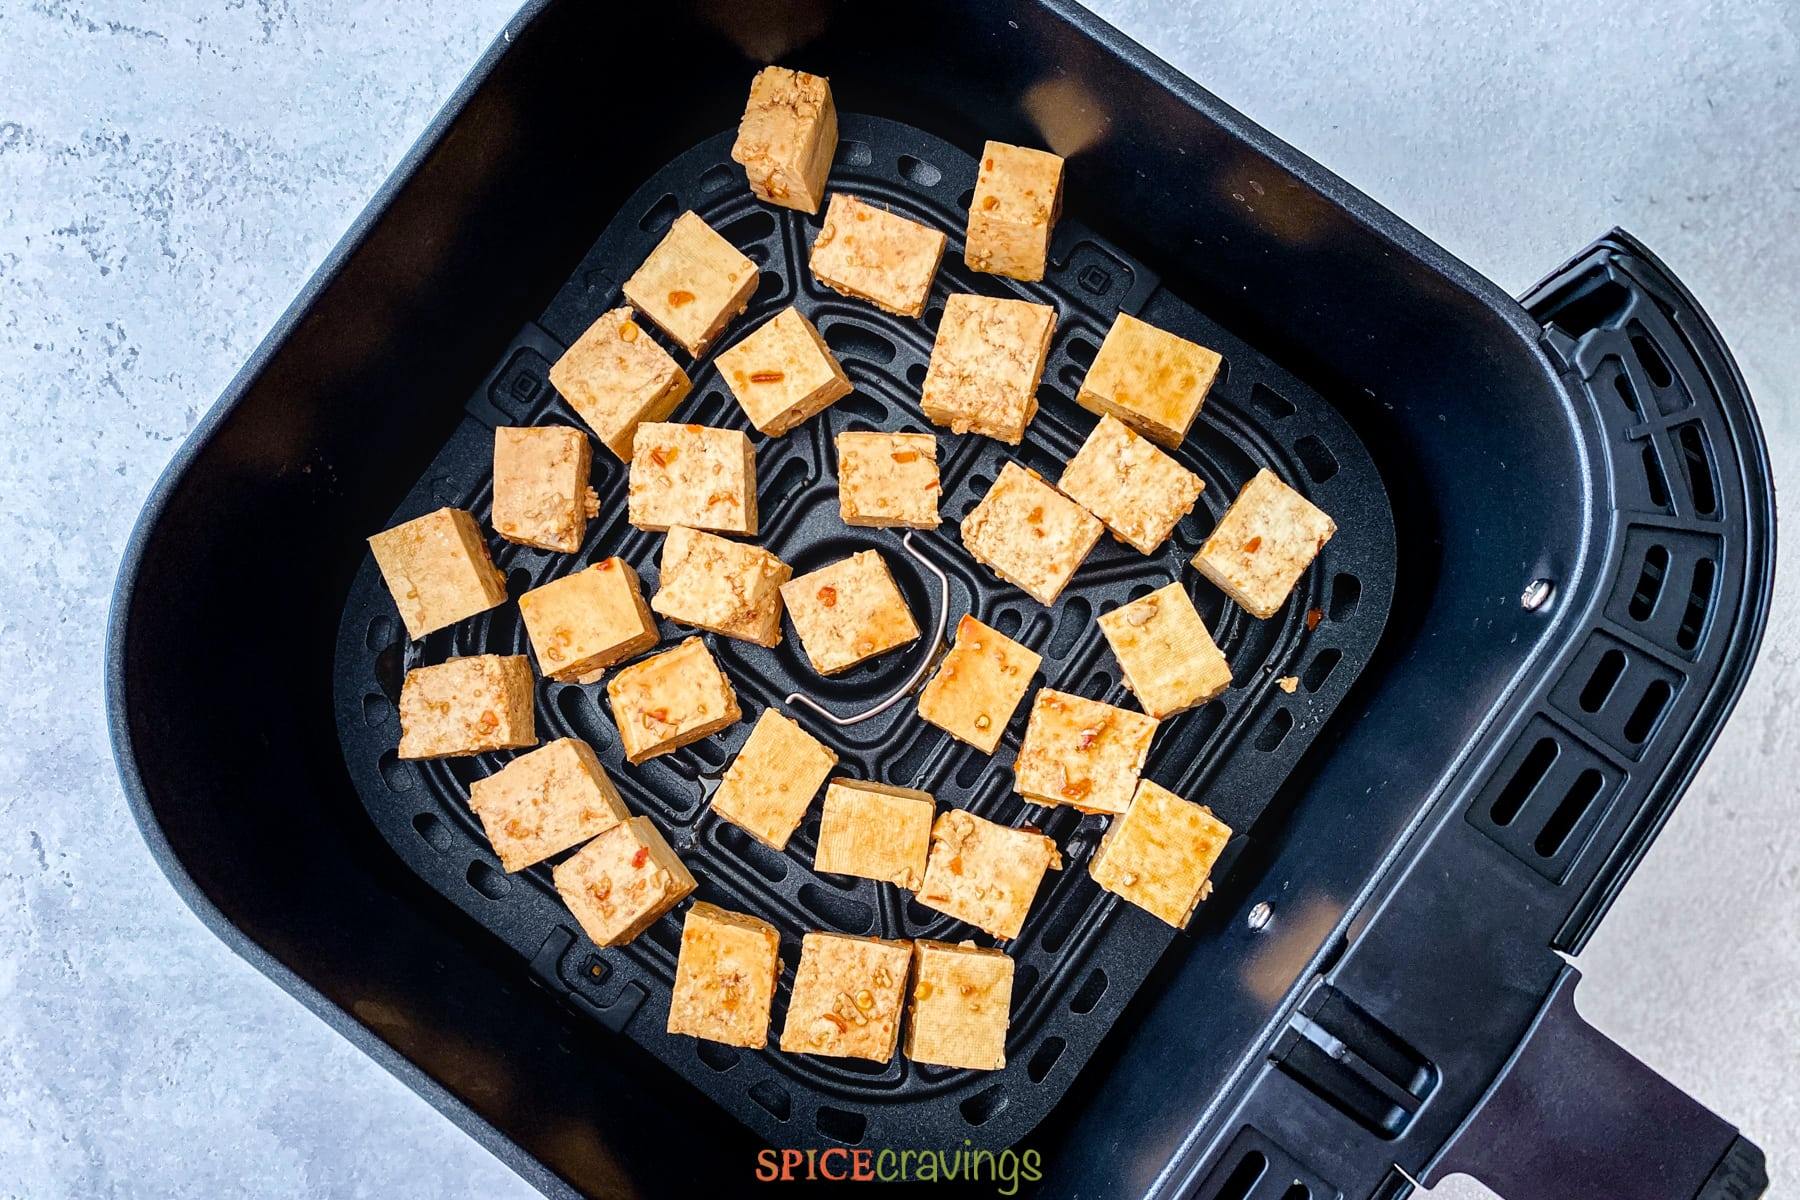 Uncooked tofu cubes in an air fryer basket